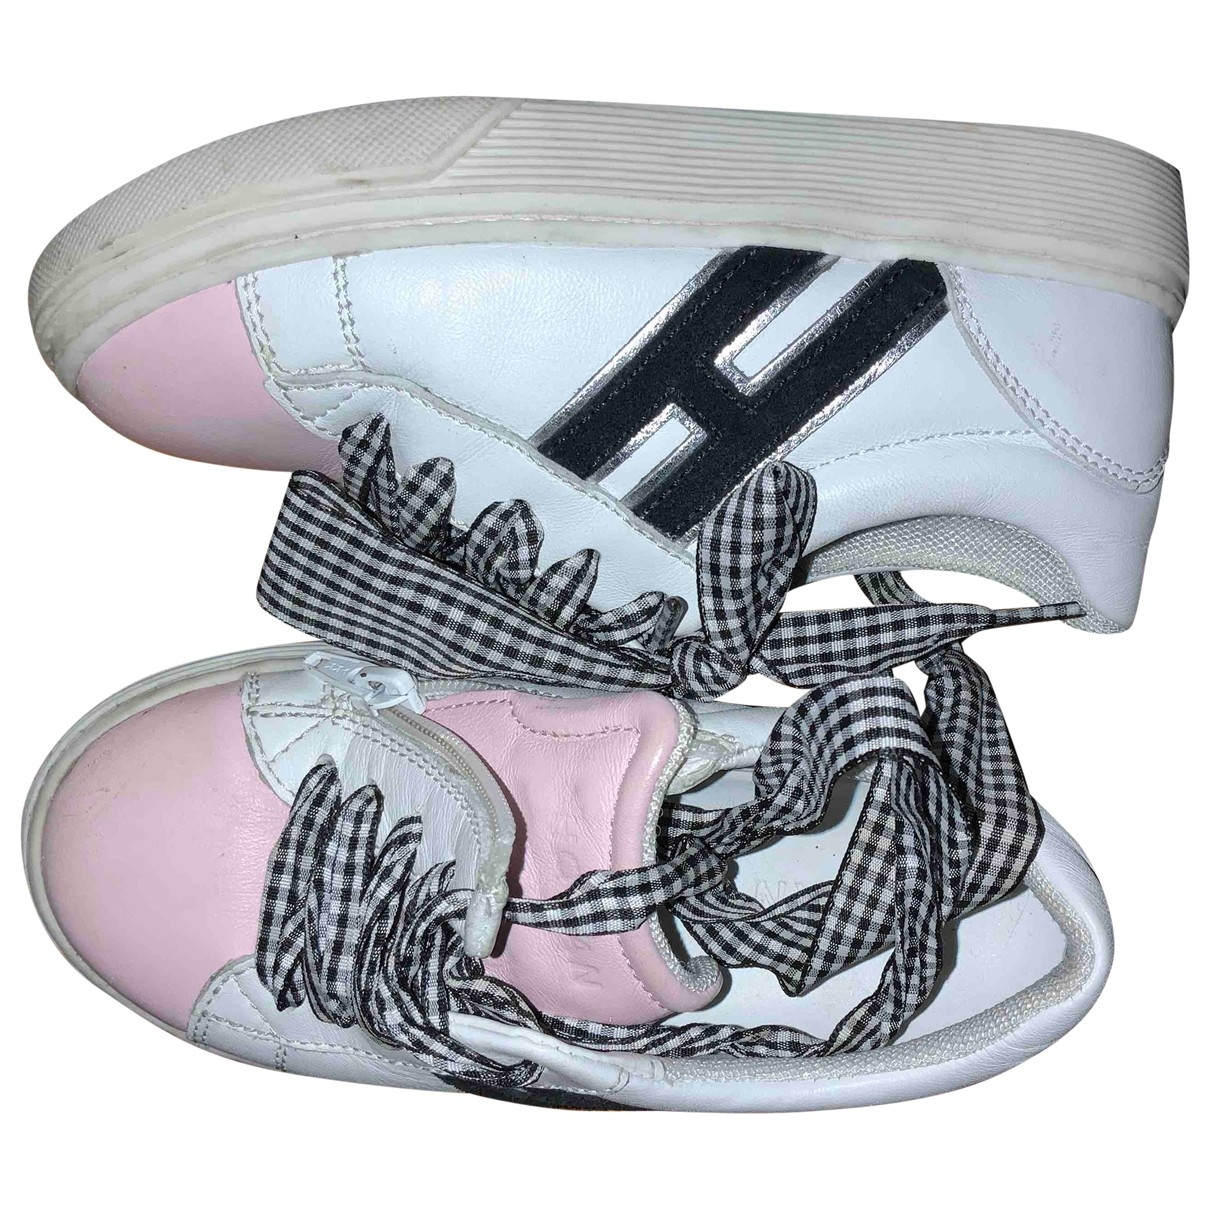 Hogan \N White Leather Trainers for Kids 26 EU